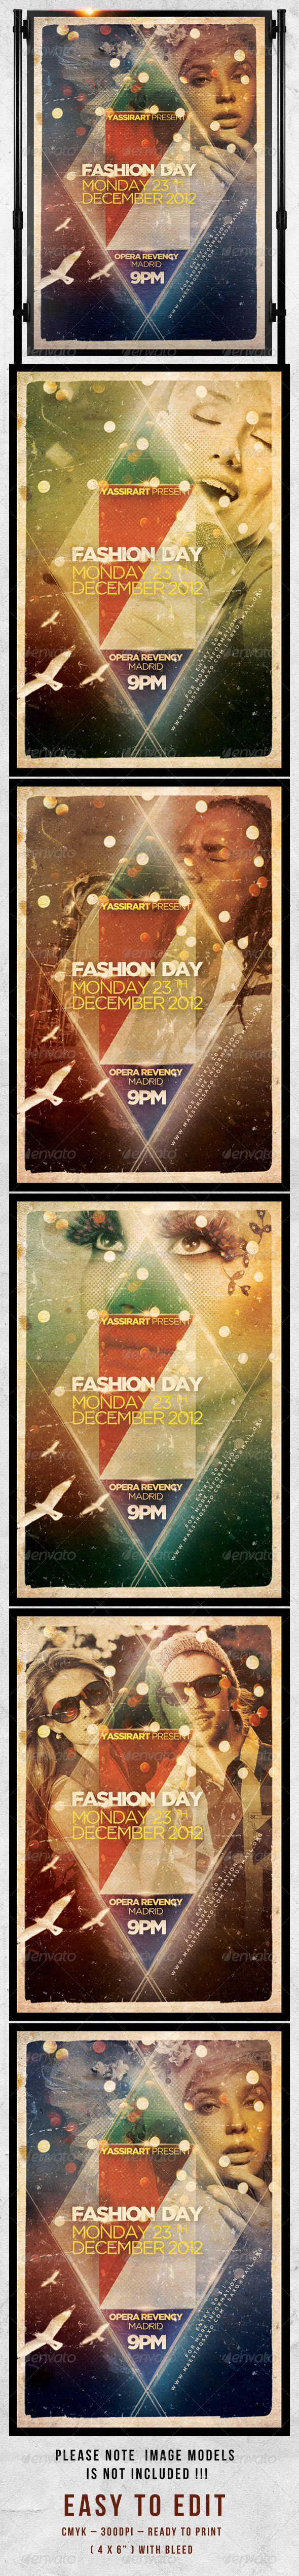 GraphicRiver Fashion Day Flyer Template 2898266